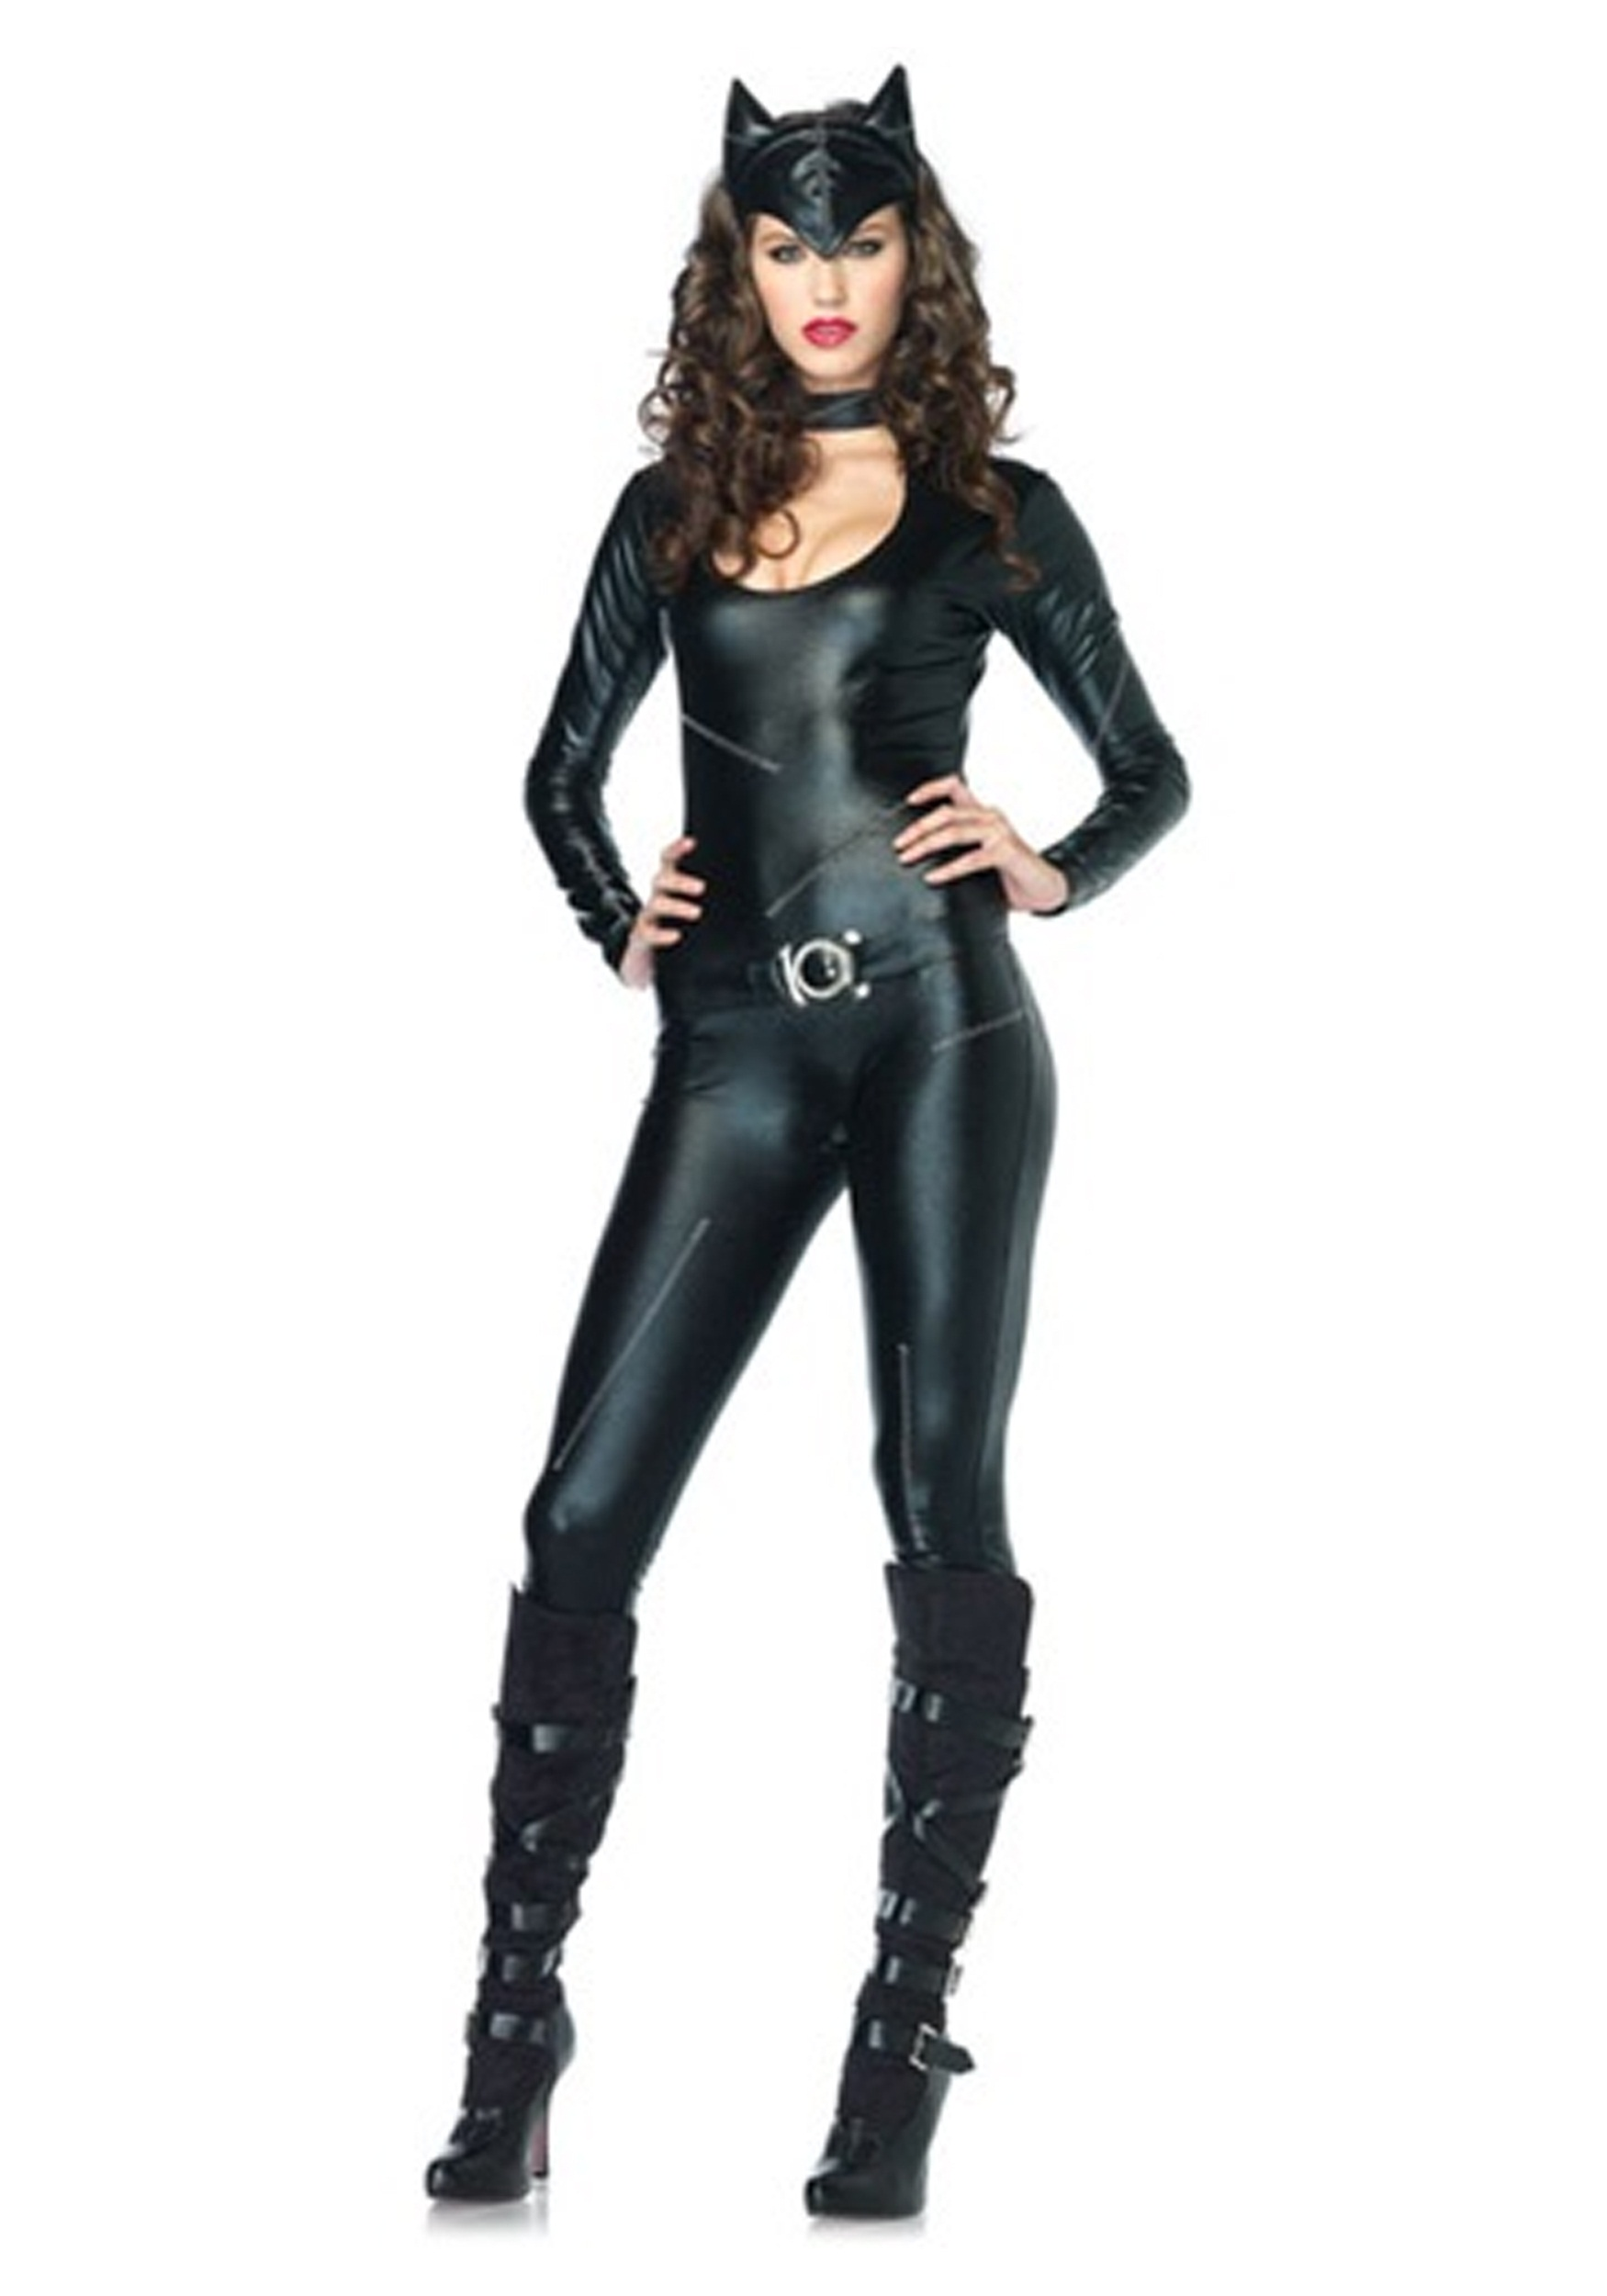 Sexy Feline Catsuit Costume for Women   Sexy Halloween Costume for Women